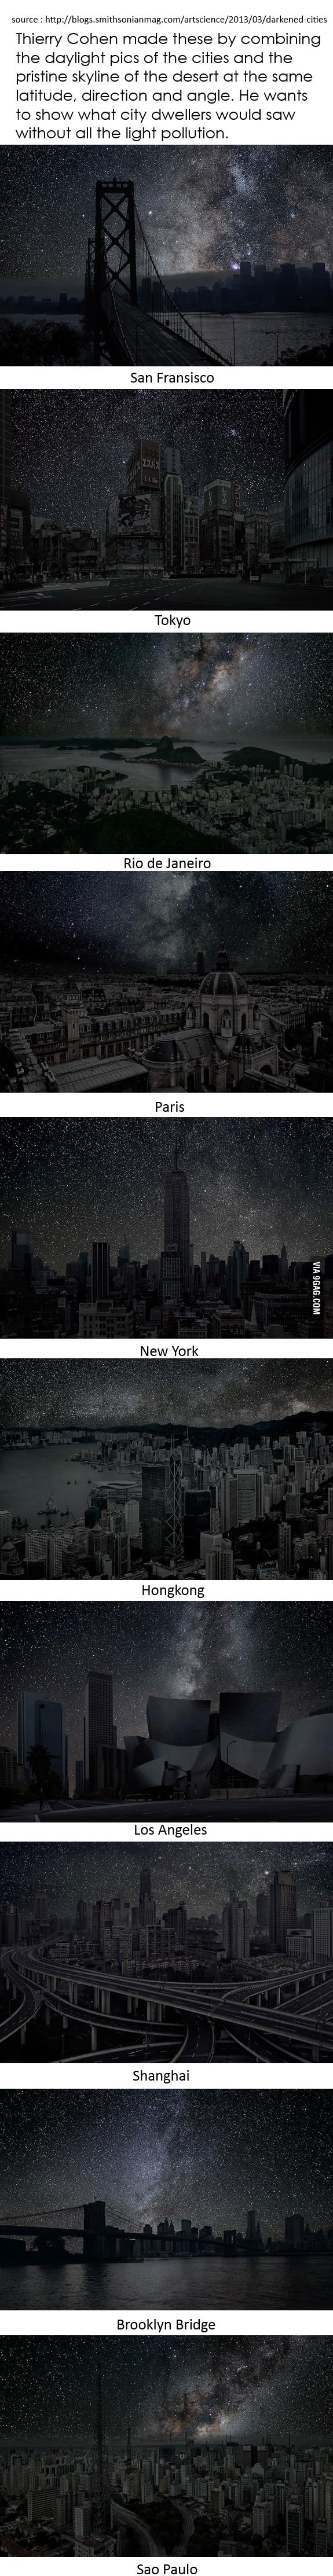 Cities' pure night skyline